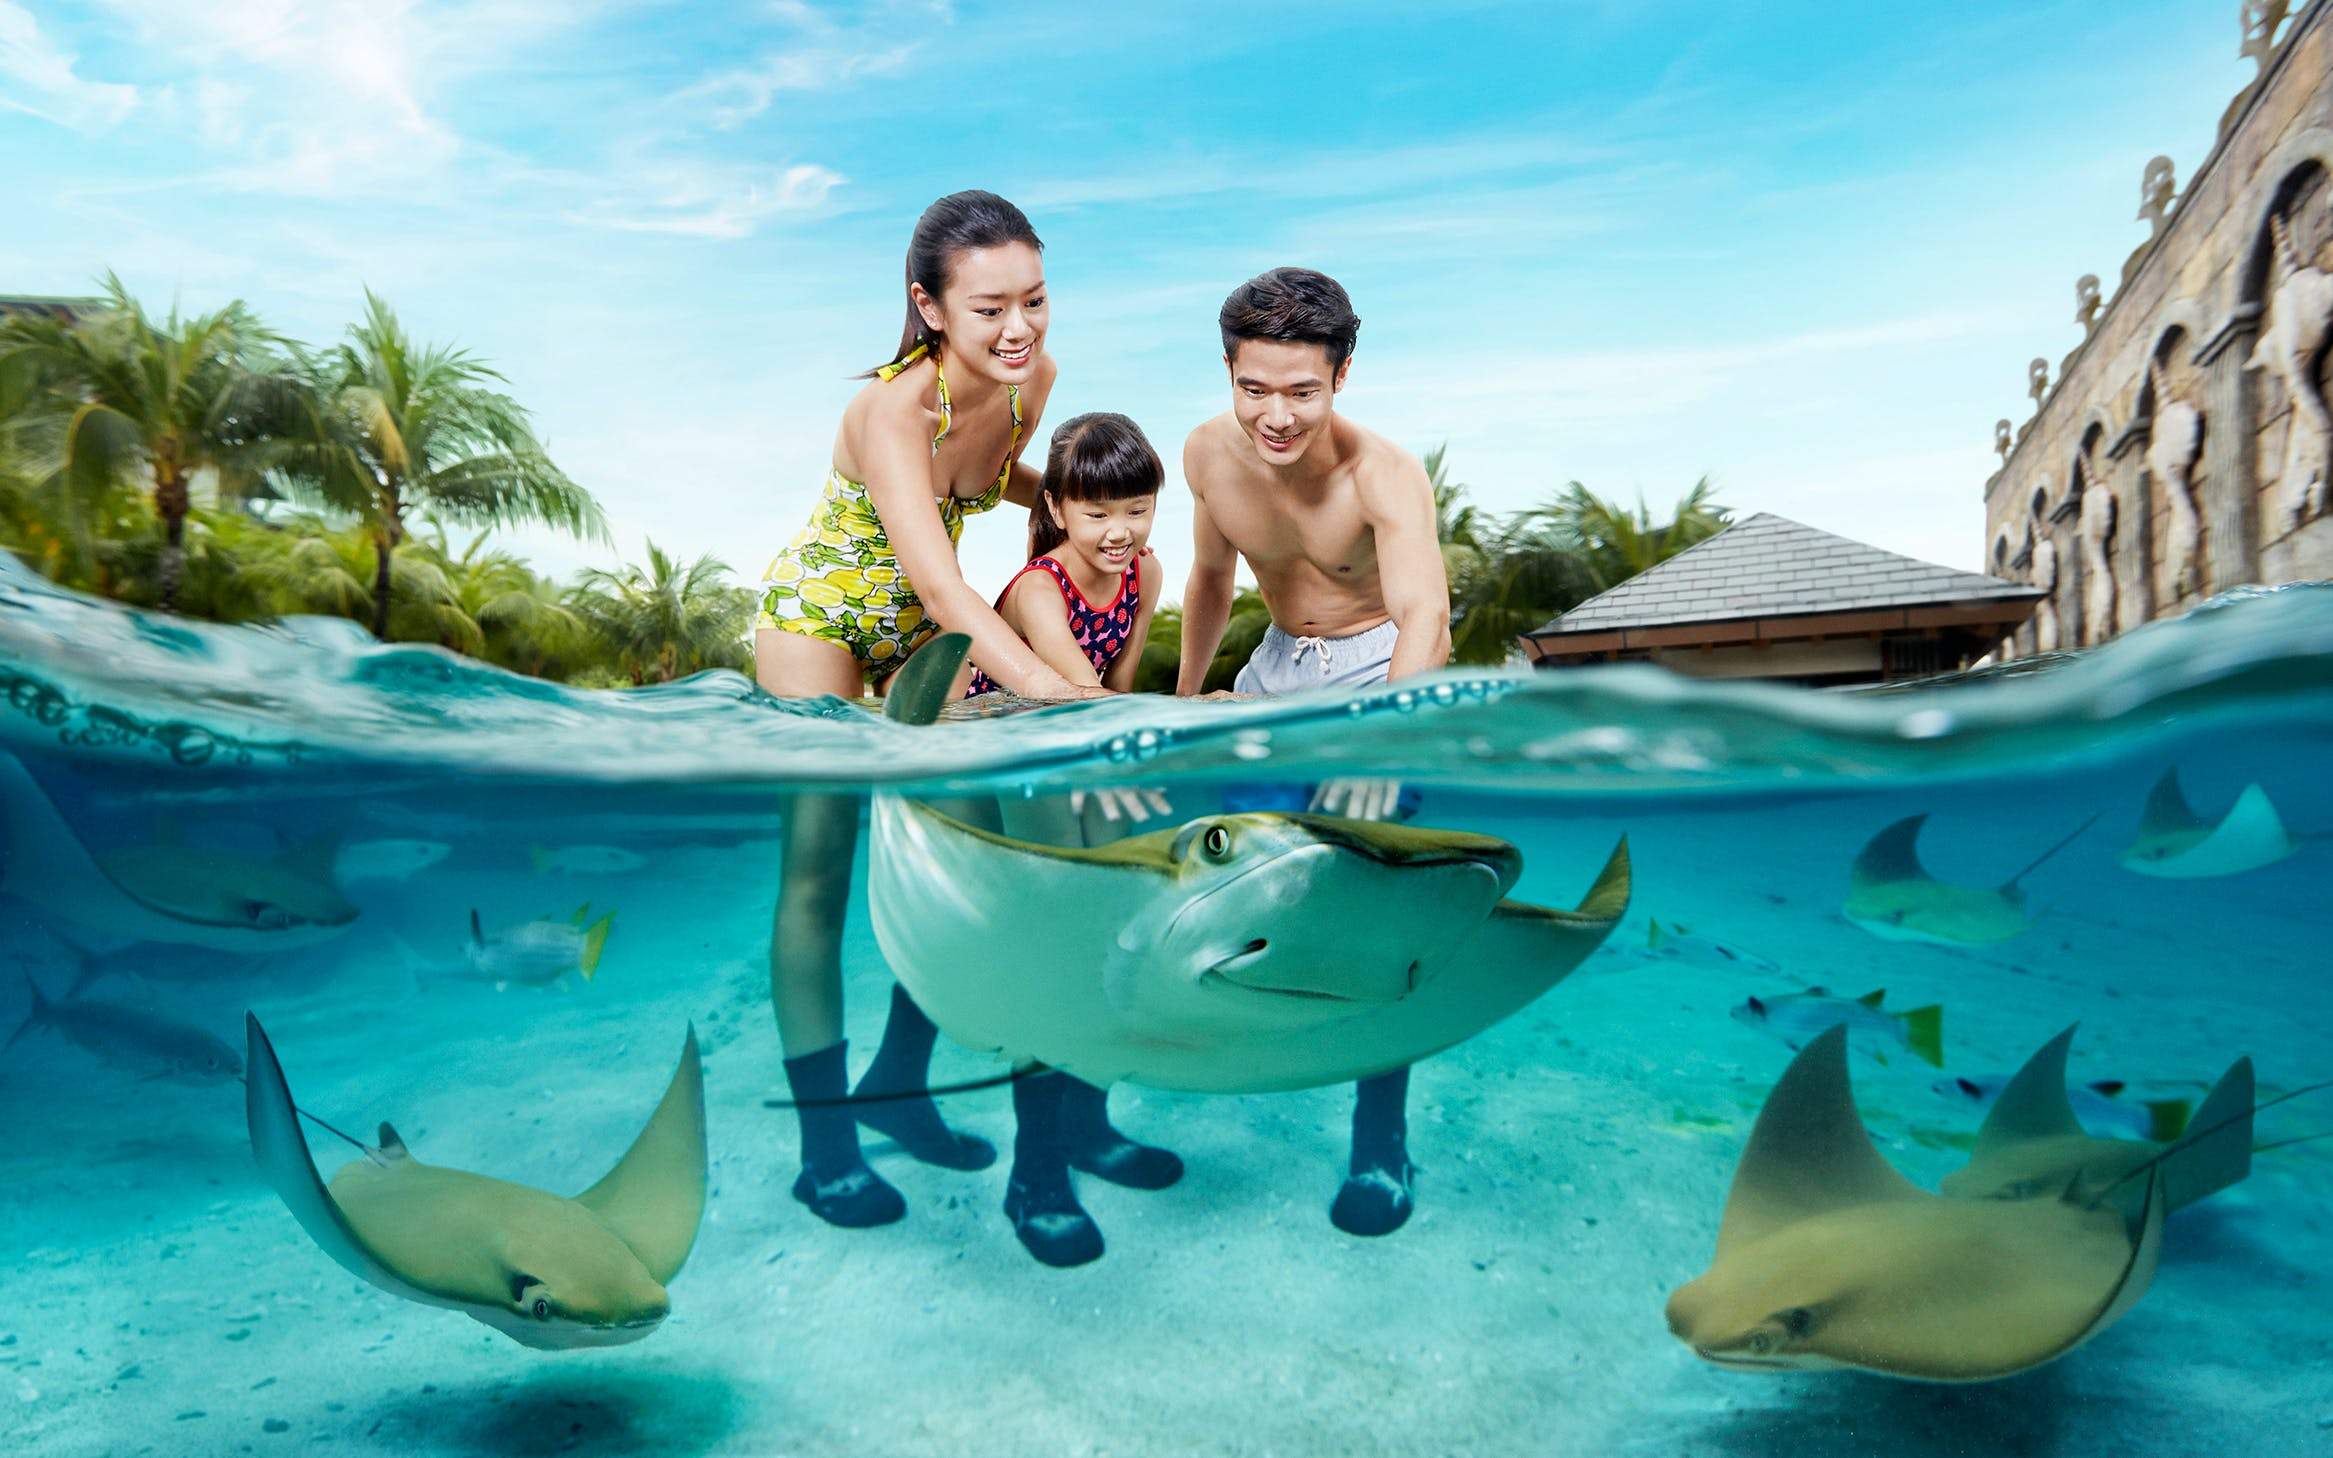 Super Saver Combo: Universal Studios Singapore + Adventure Cove Waterpark